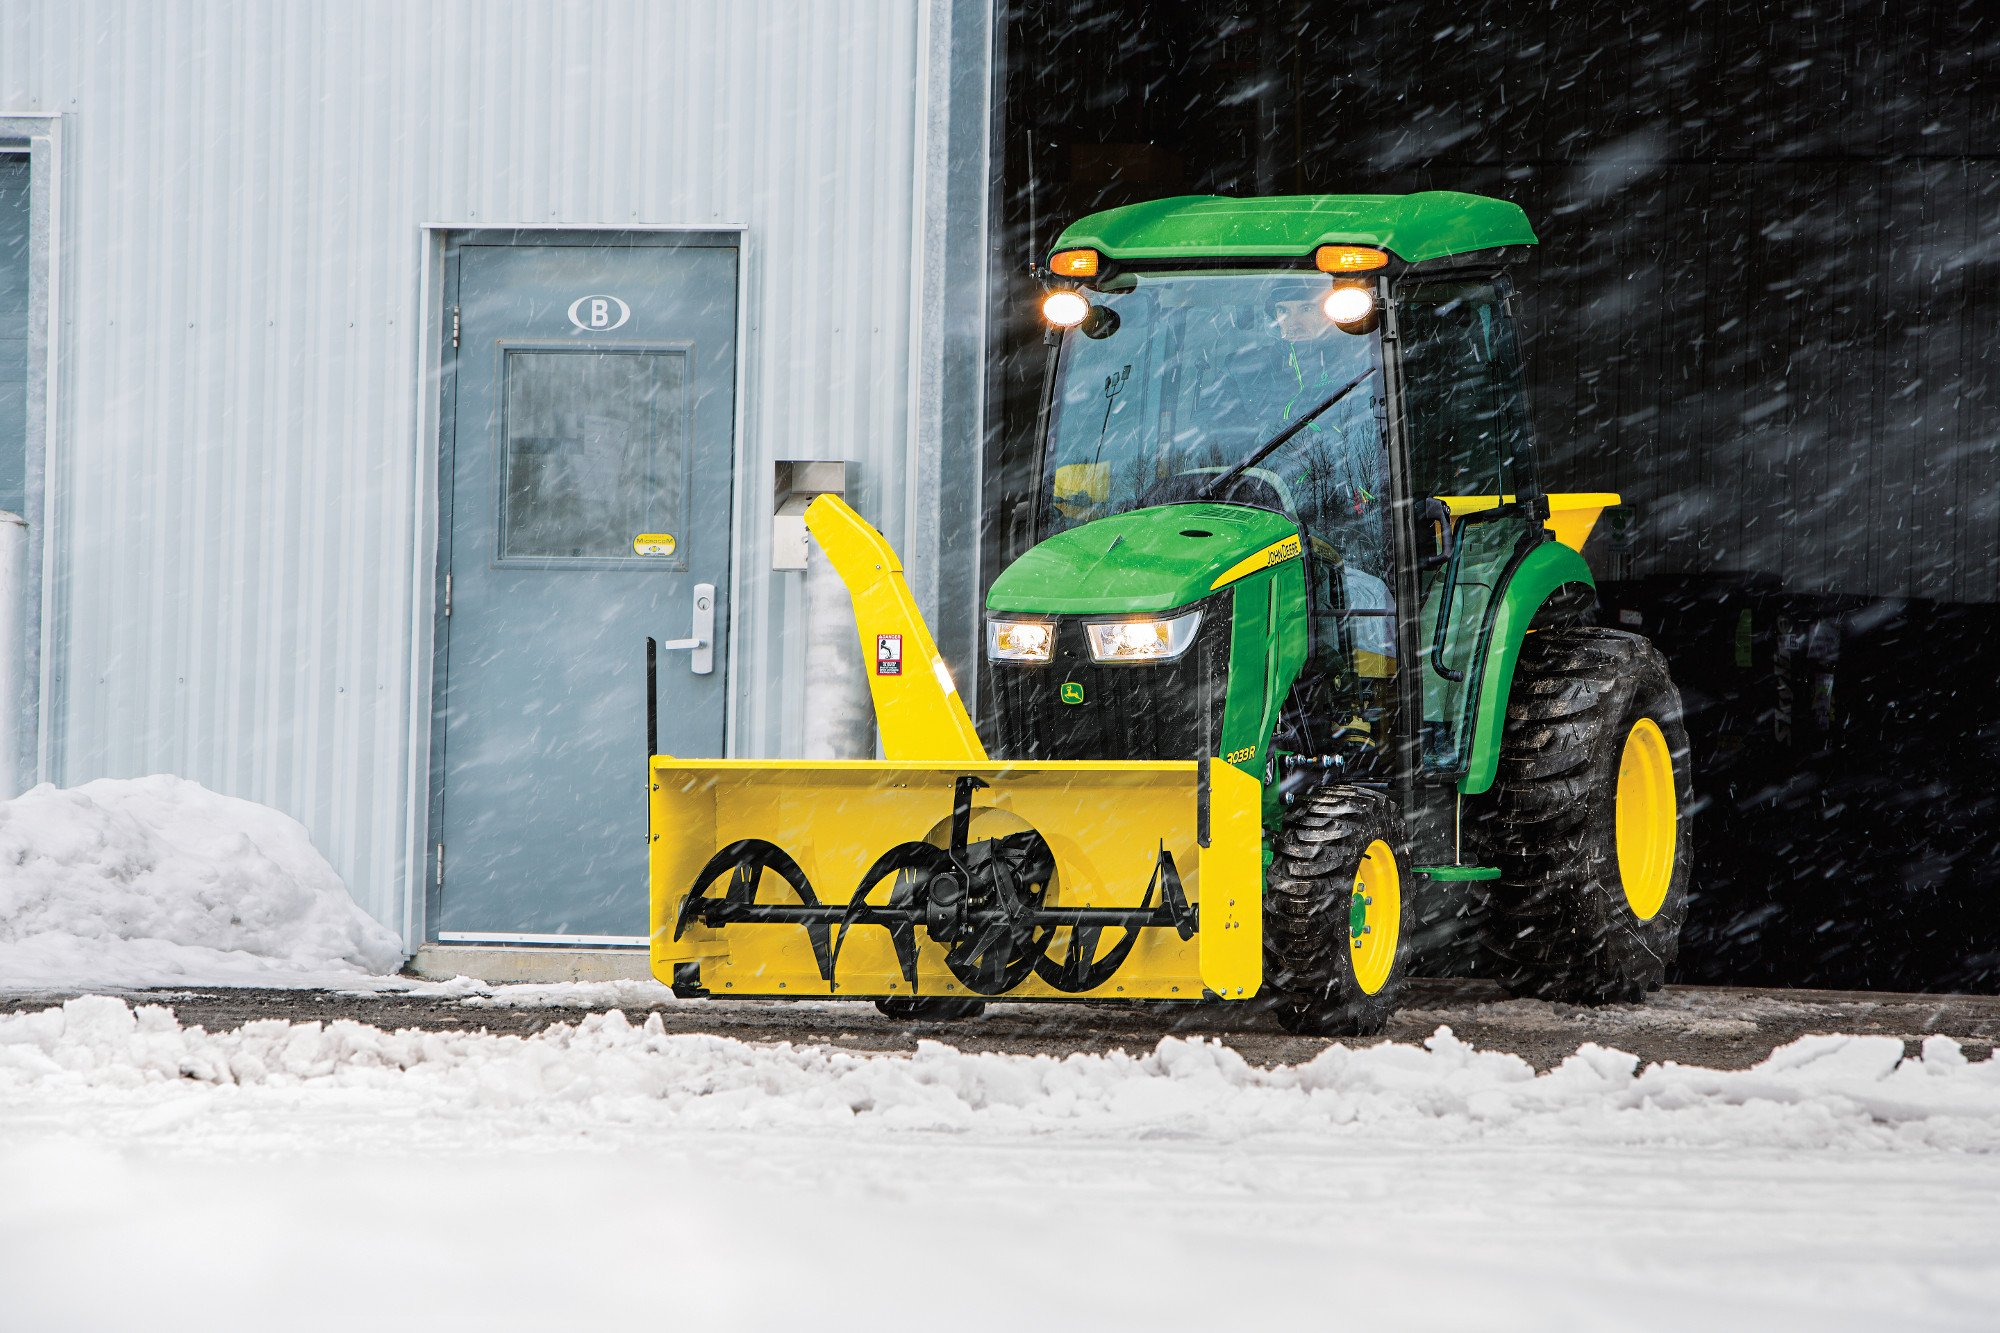 John Deere Compact Tractor with front mounted snow blower